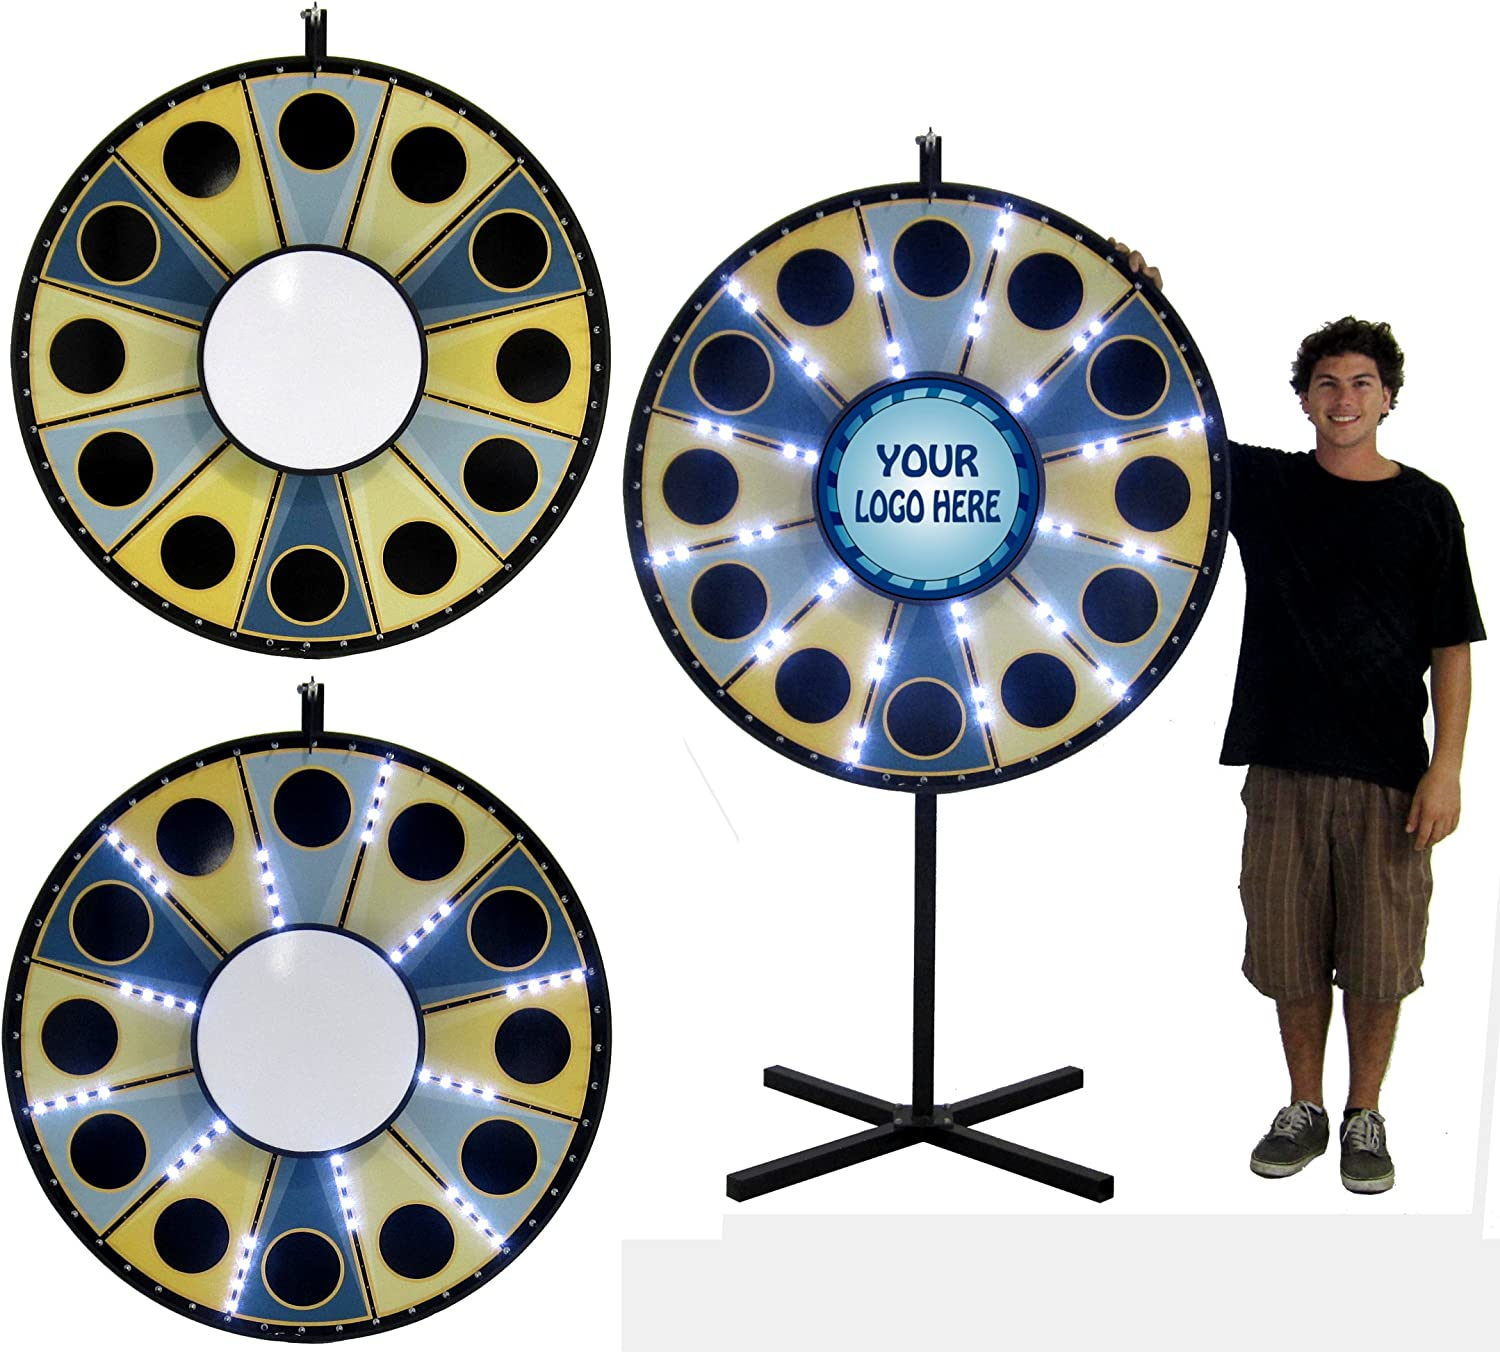 48in LED Lighted Insert Your Own Graphics Magnetic Prize Wheel with Custom Stationary Logo